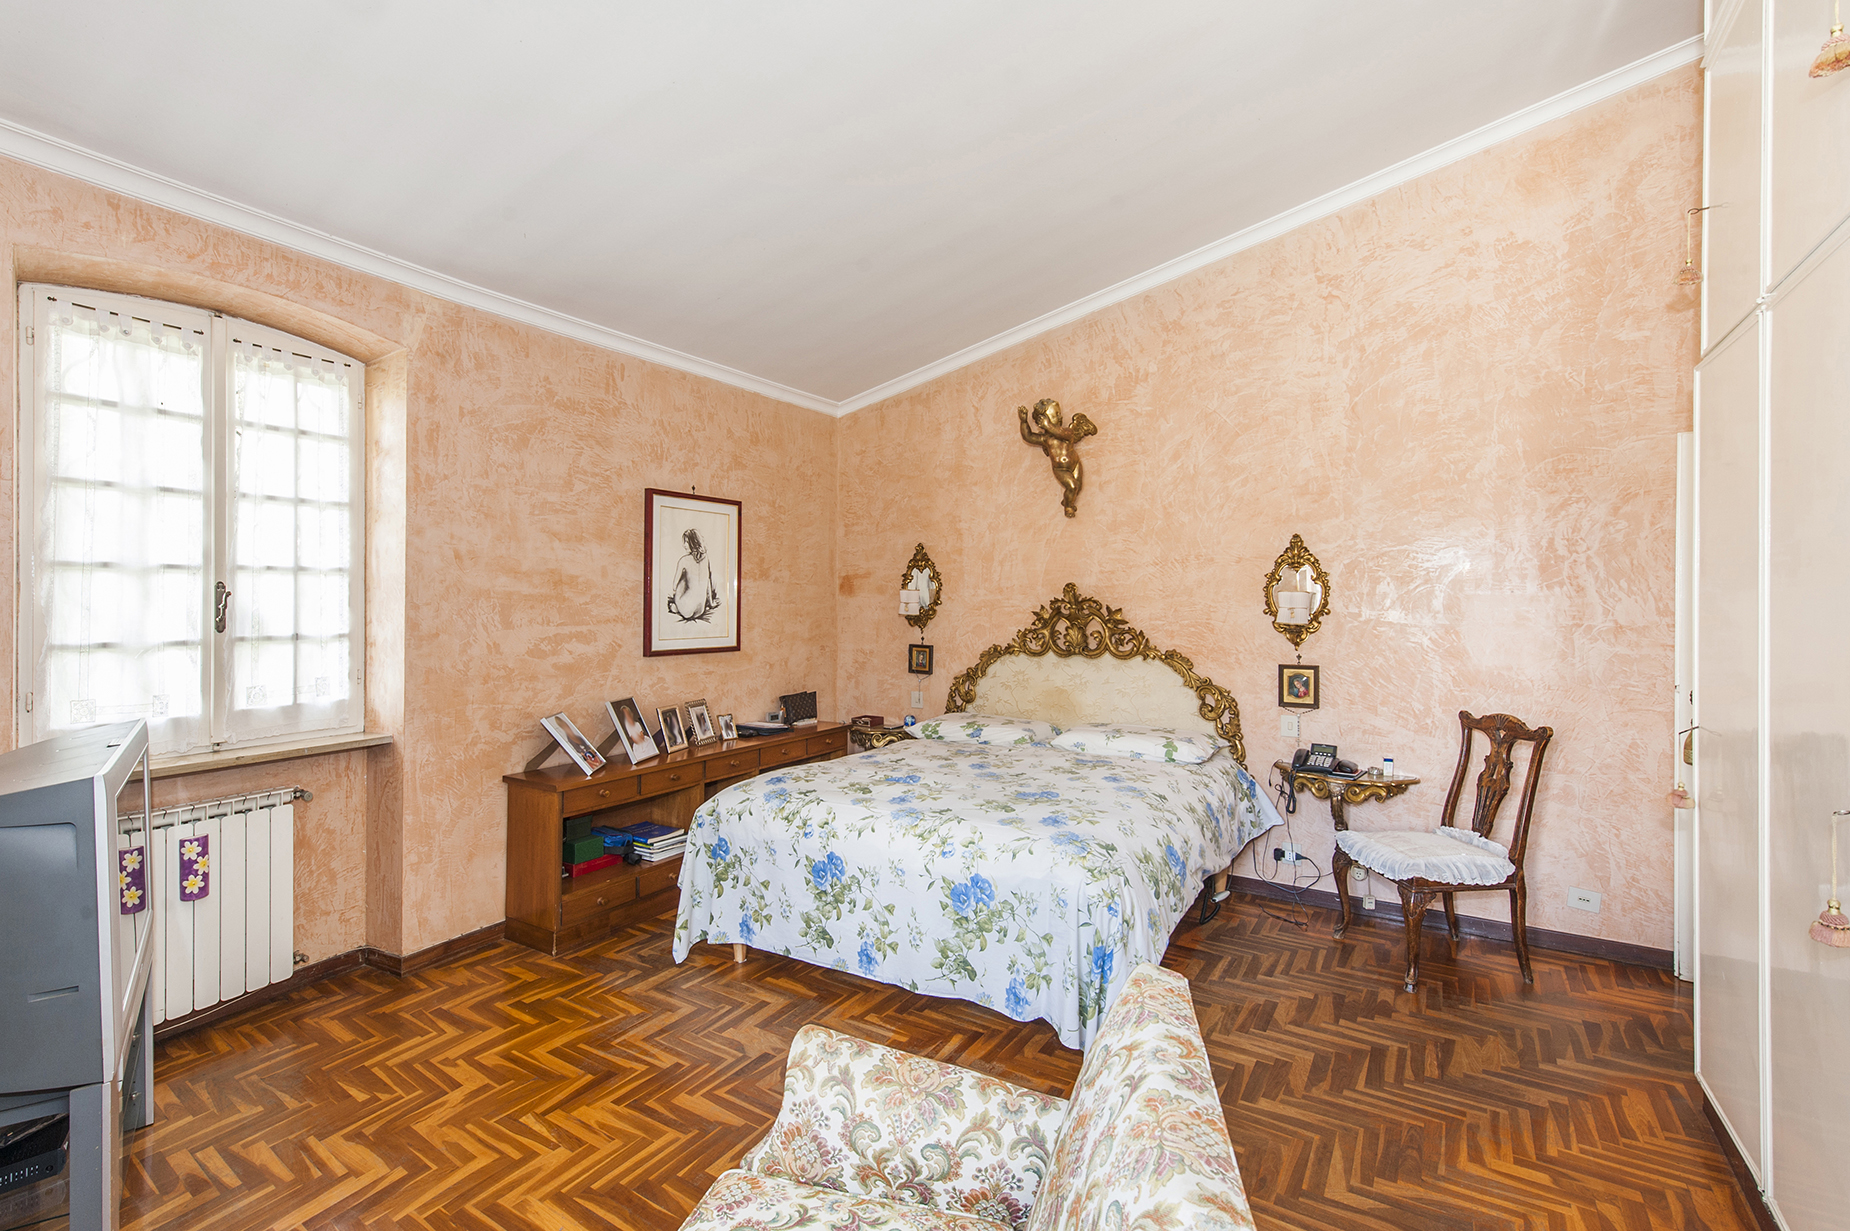 Additional photo for property listing at Villa with large garden in the Eur Infernetto neighborhood Via Fortezza Rome, Rome 00124 Italie